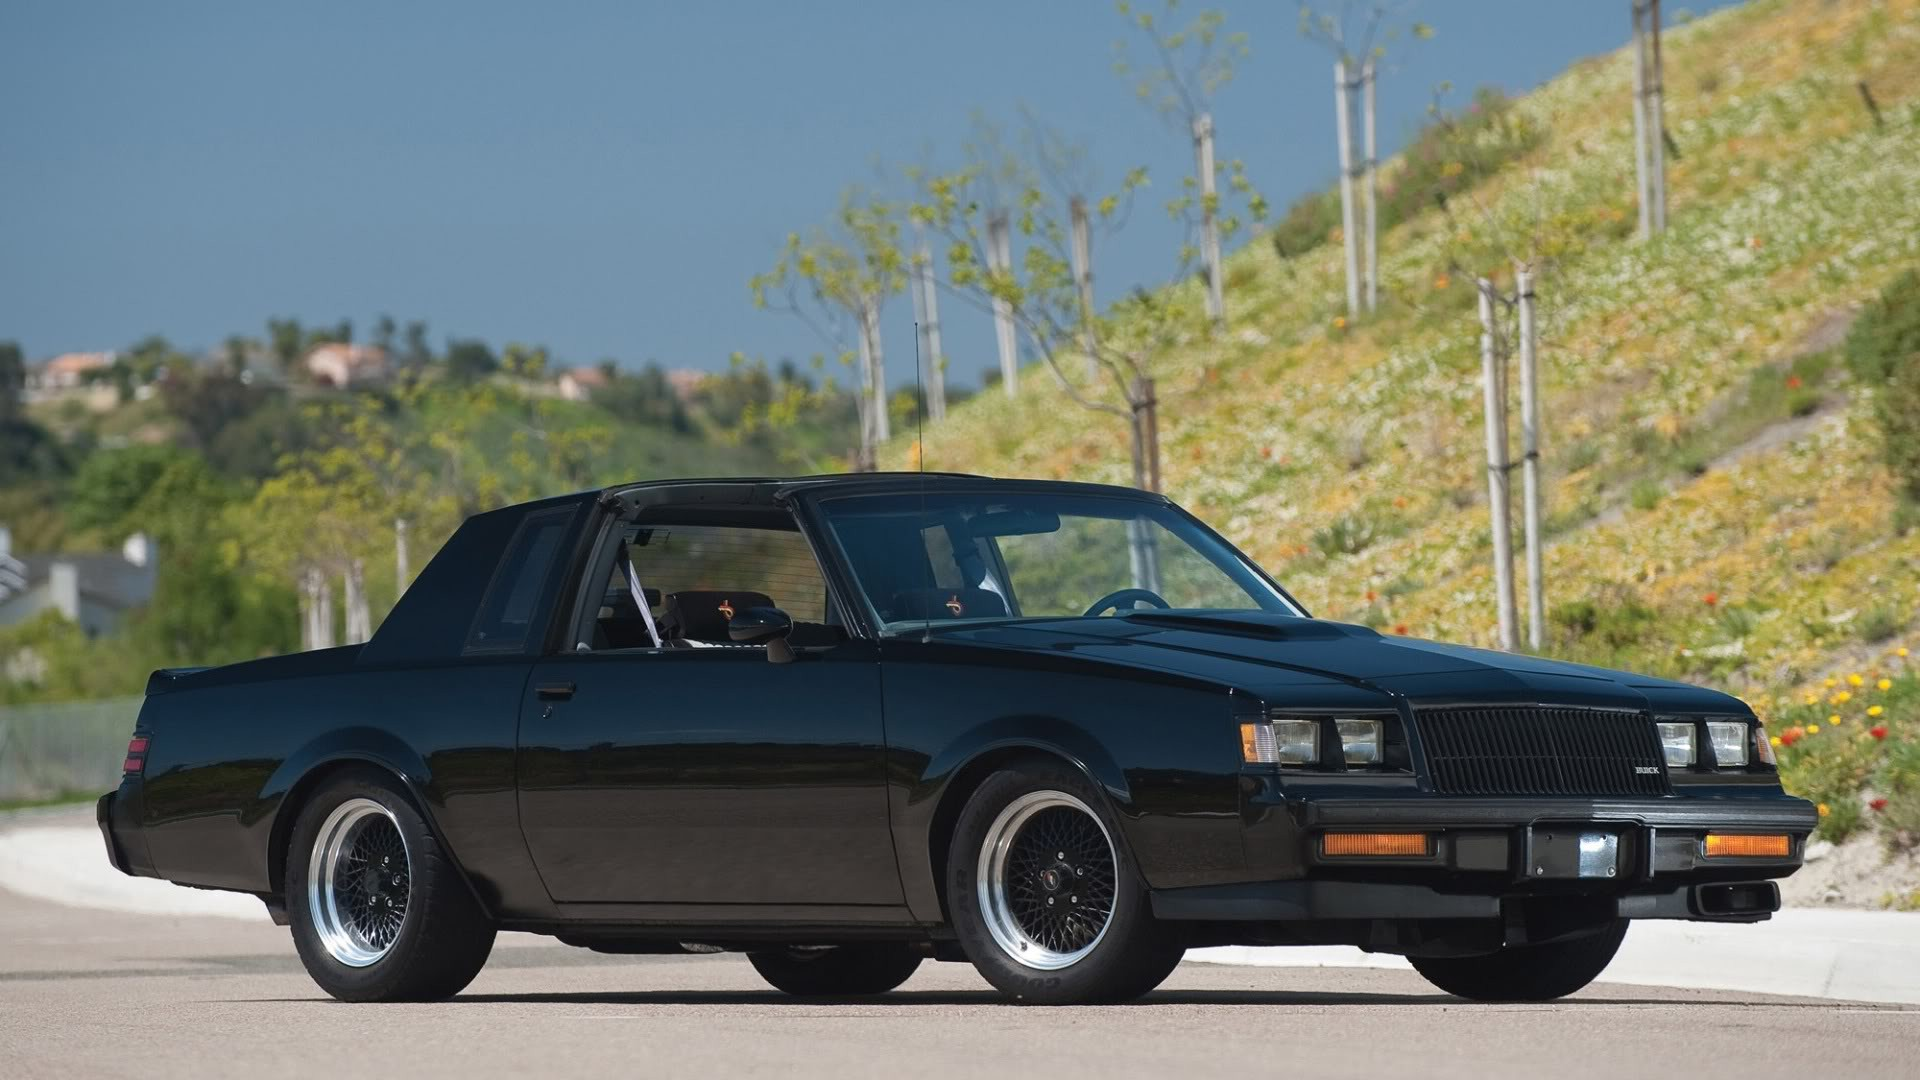 Fast And Furious 4 Cars Wallpapers Cars Buick Black Cars Buick Gnx Muscle Car Wallpaper